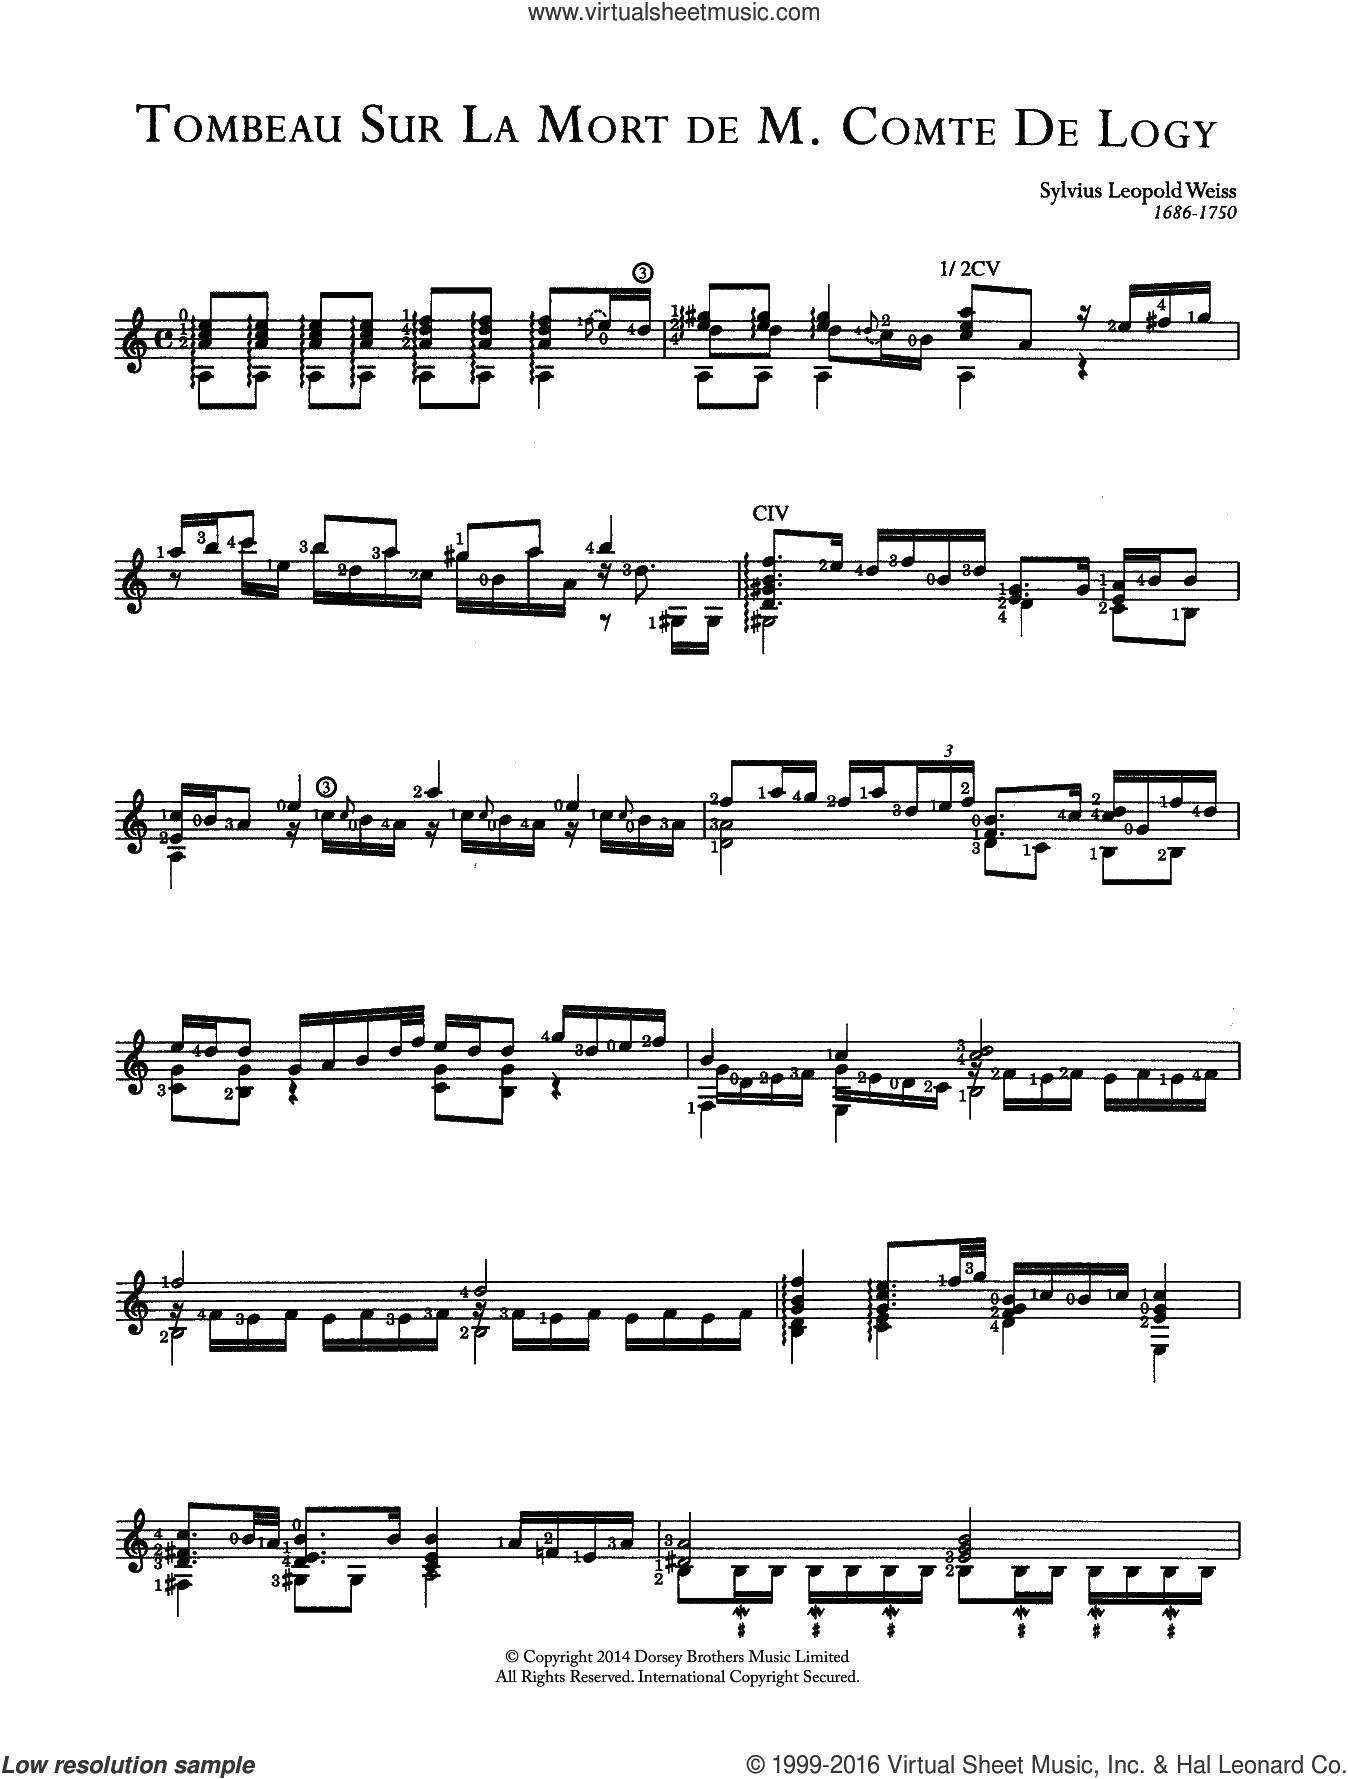 Tombeau Sur La Mort De M. Comte De Logy sheet music for guitar solo (chords) by Sylvius Leopold Weiss, classical score, easy guitar (chords). Score Image Preview.